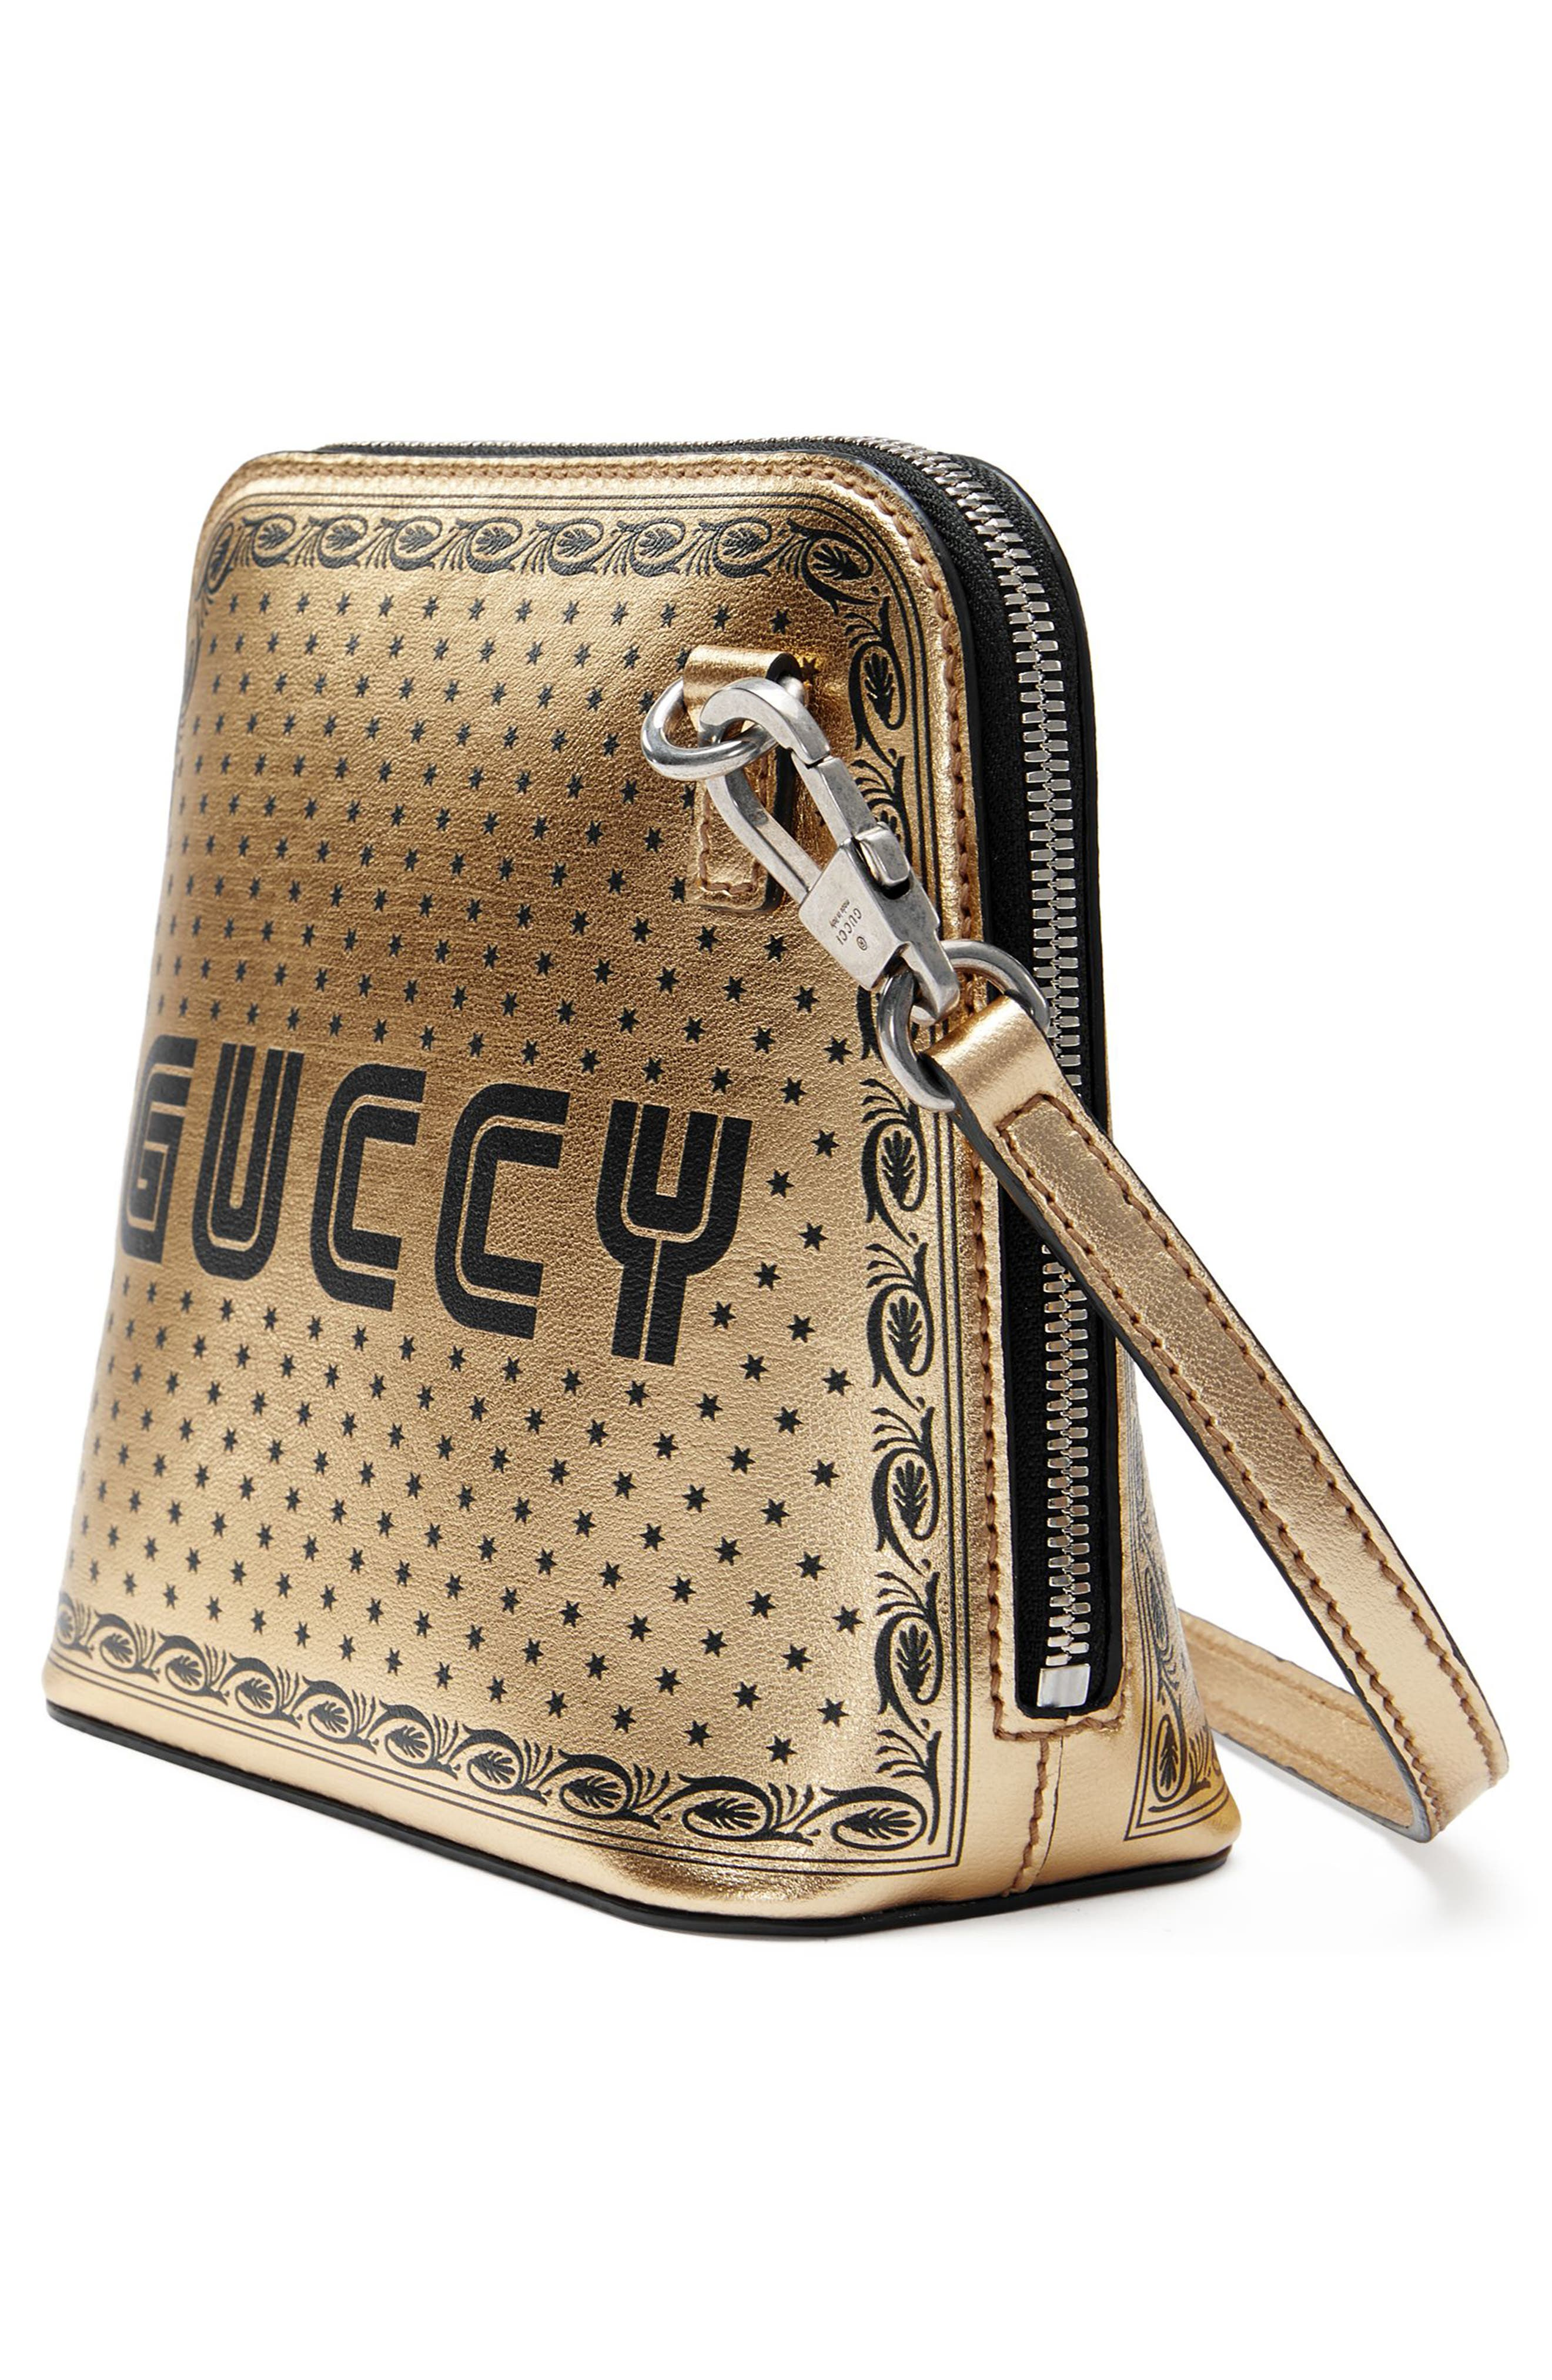 Guccy Logo Moon & Stars Leather Crossbody Bag,                             Alternate thumbnail 4, color,                             Oro/ Nero